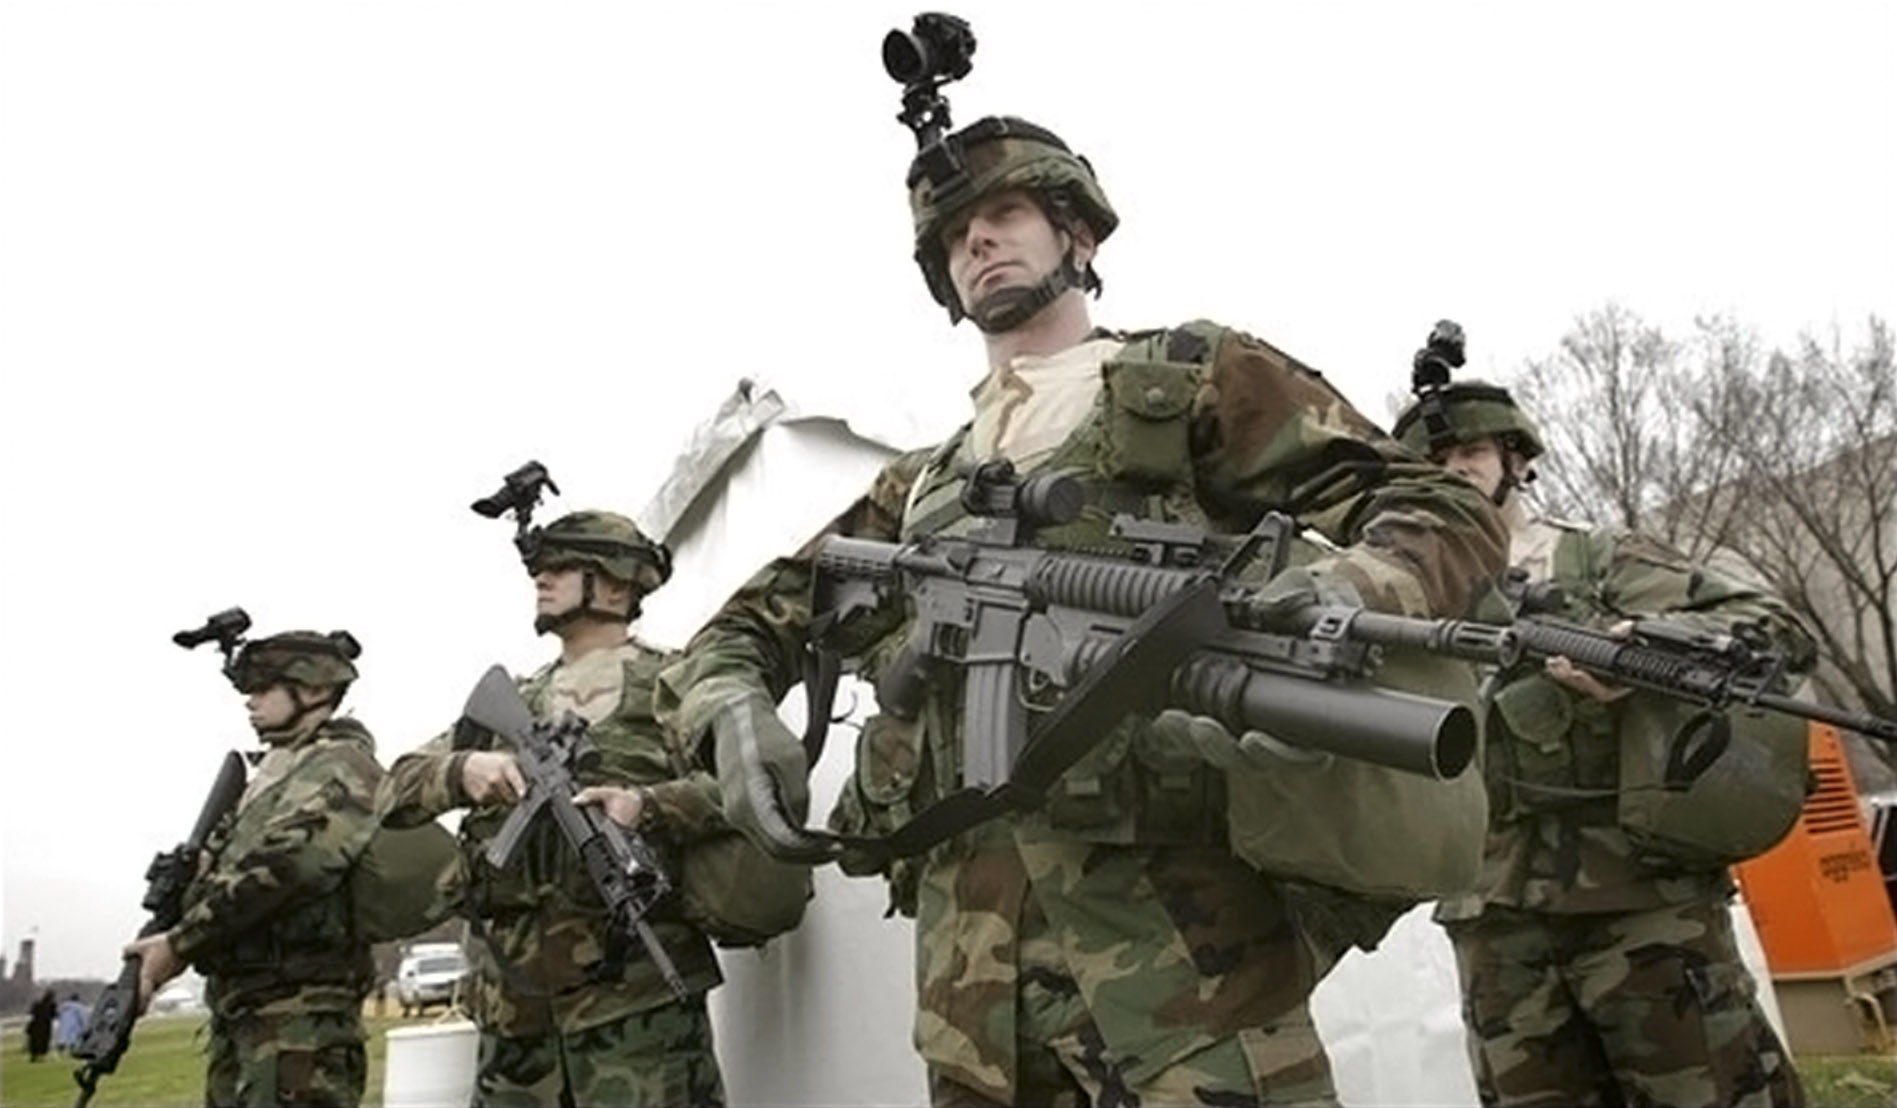 U.S. Army Sgt Jeremy McClellan of Borger, Texas, brandishes his M4 firearm equipped with a M203 grenade launcher during a show of the security in place for the Presidential Inauguration, in Washington, January 11, 2005. Washington is preparing for its first presidential inauguration since the September 11, 2001 attacks and Department of Homeland Security Secretary Tom Ridge said security at the January 20 event will be unprecedented. REUTERS/Jason Reed